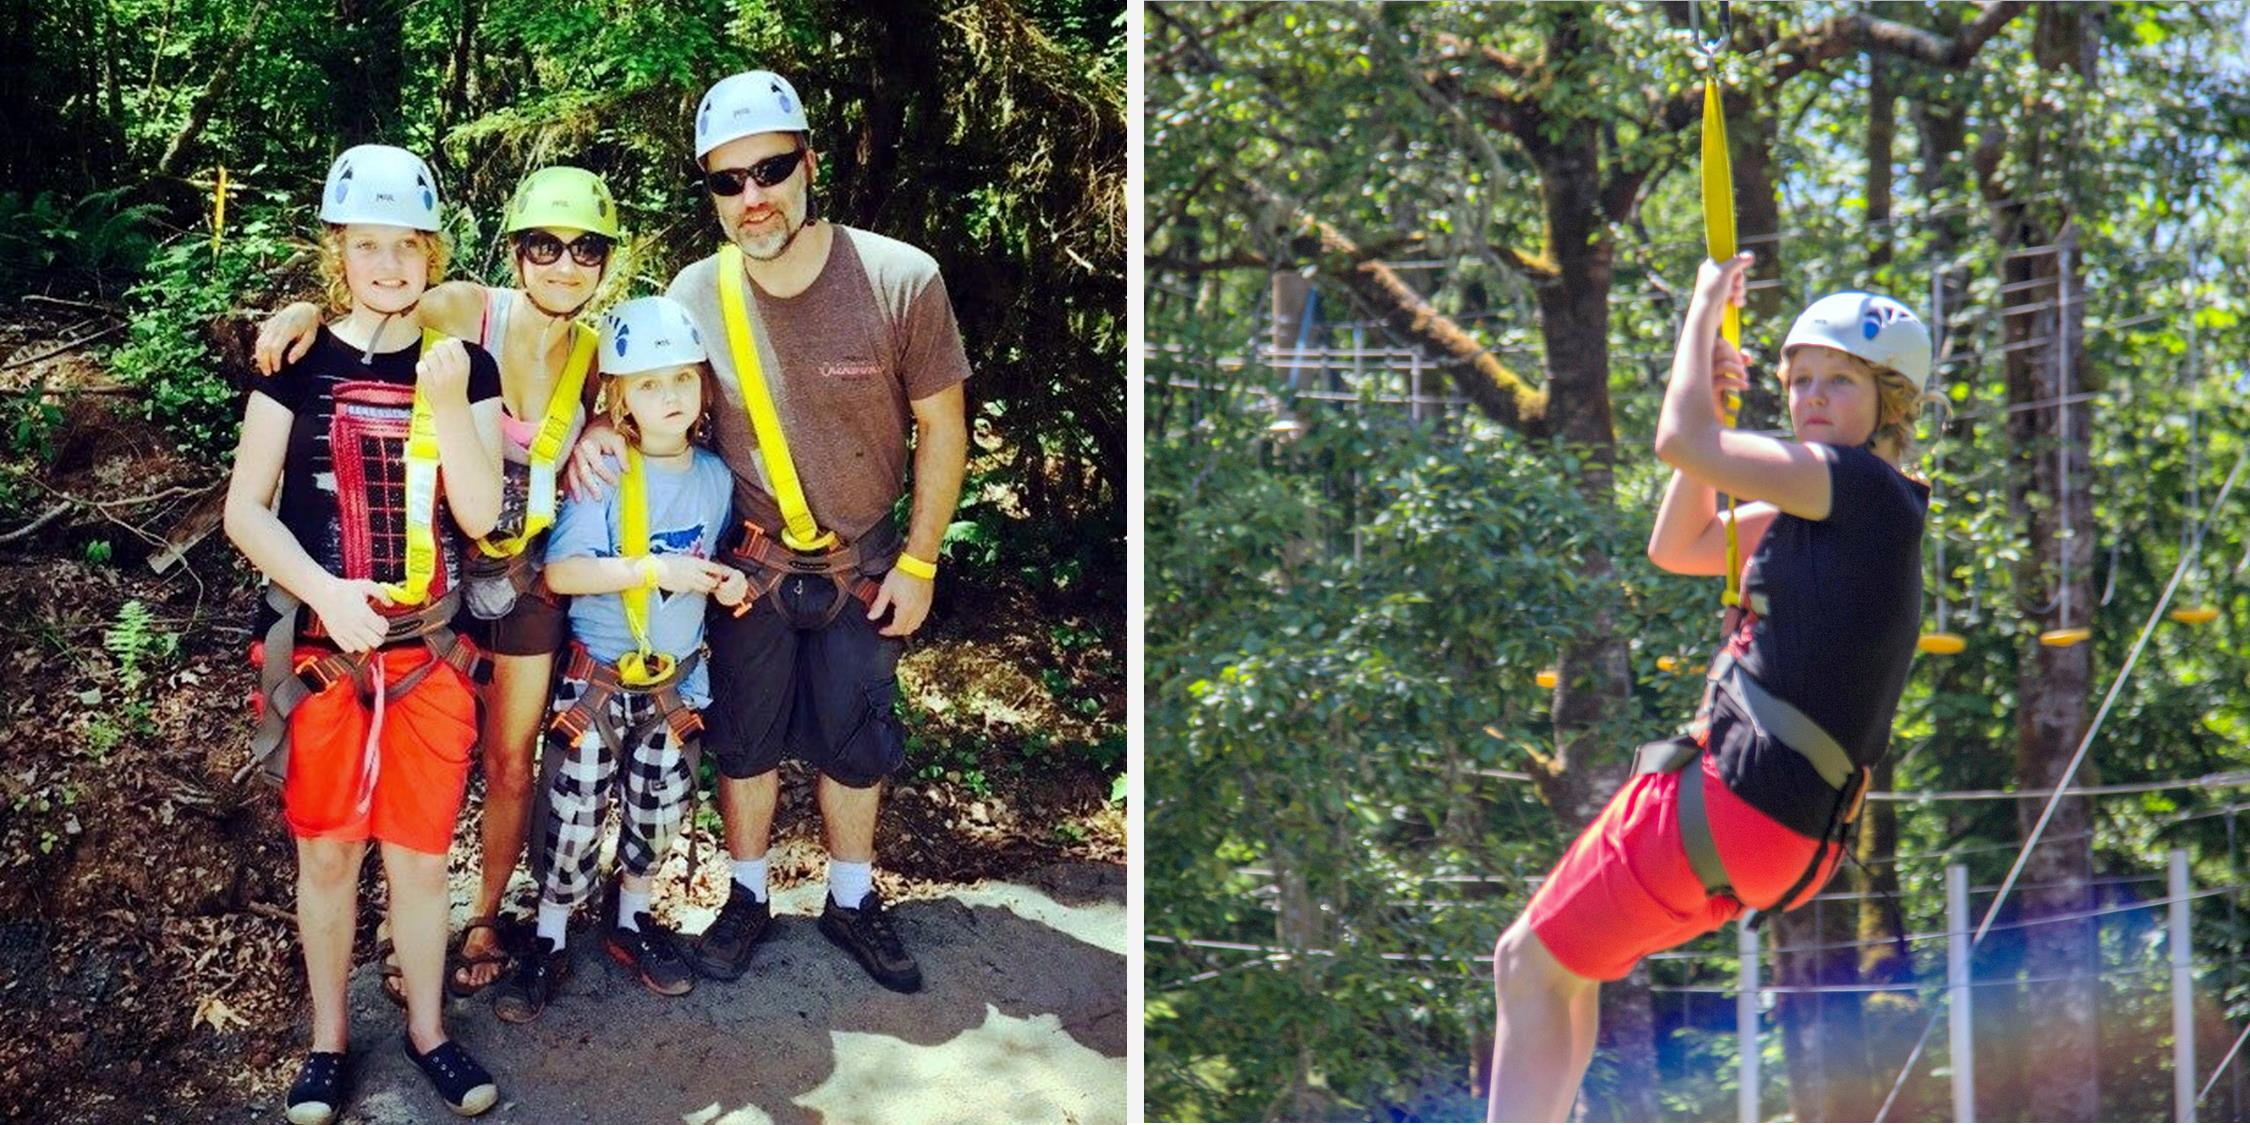 Left photo: A family poses for a photo while wearing helmets and harnesses for ziplining. Right photo: A teenage girl holds on while ziplining in the forest.